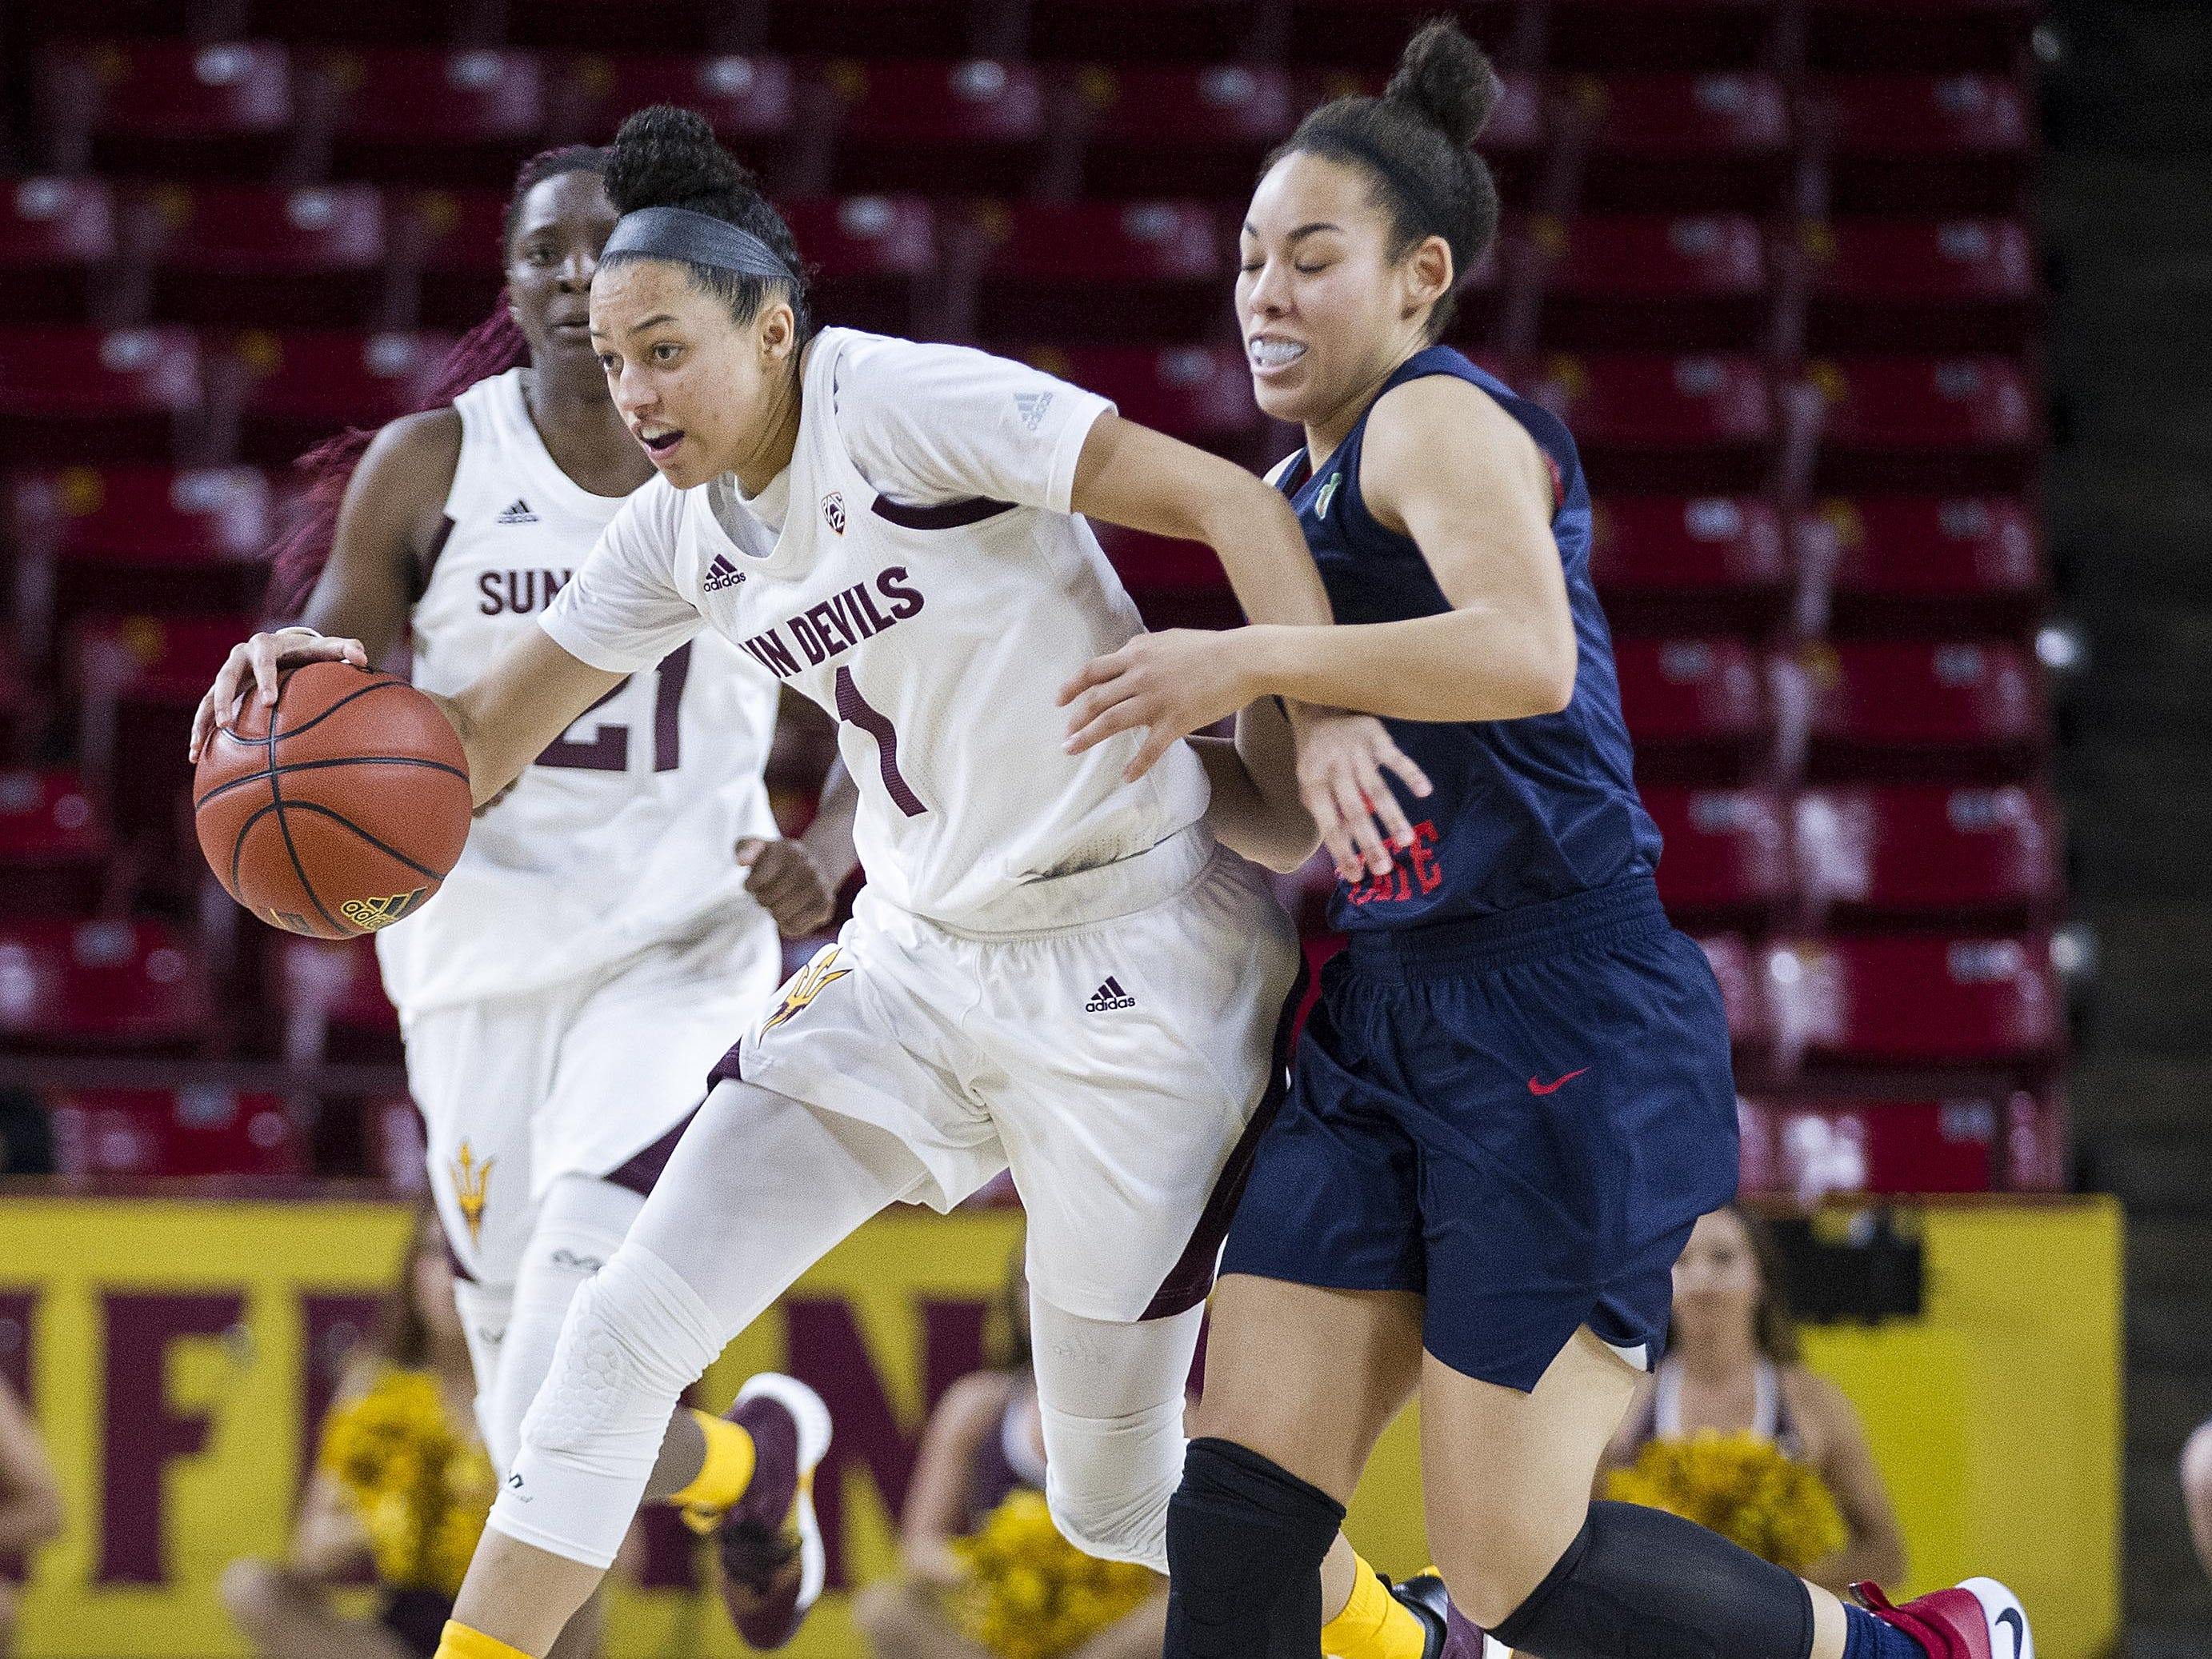 Arizona State's Reili Richardson (1) drives around Fresno State's Candice White (10) in the second half of their game in Tempe, Thursday, Dec. 20, 2018.